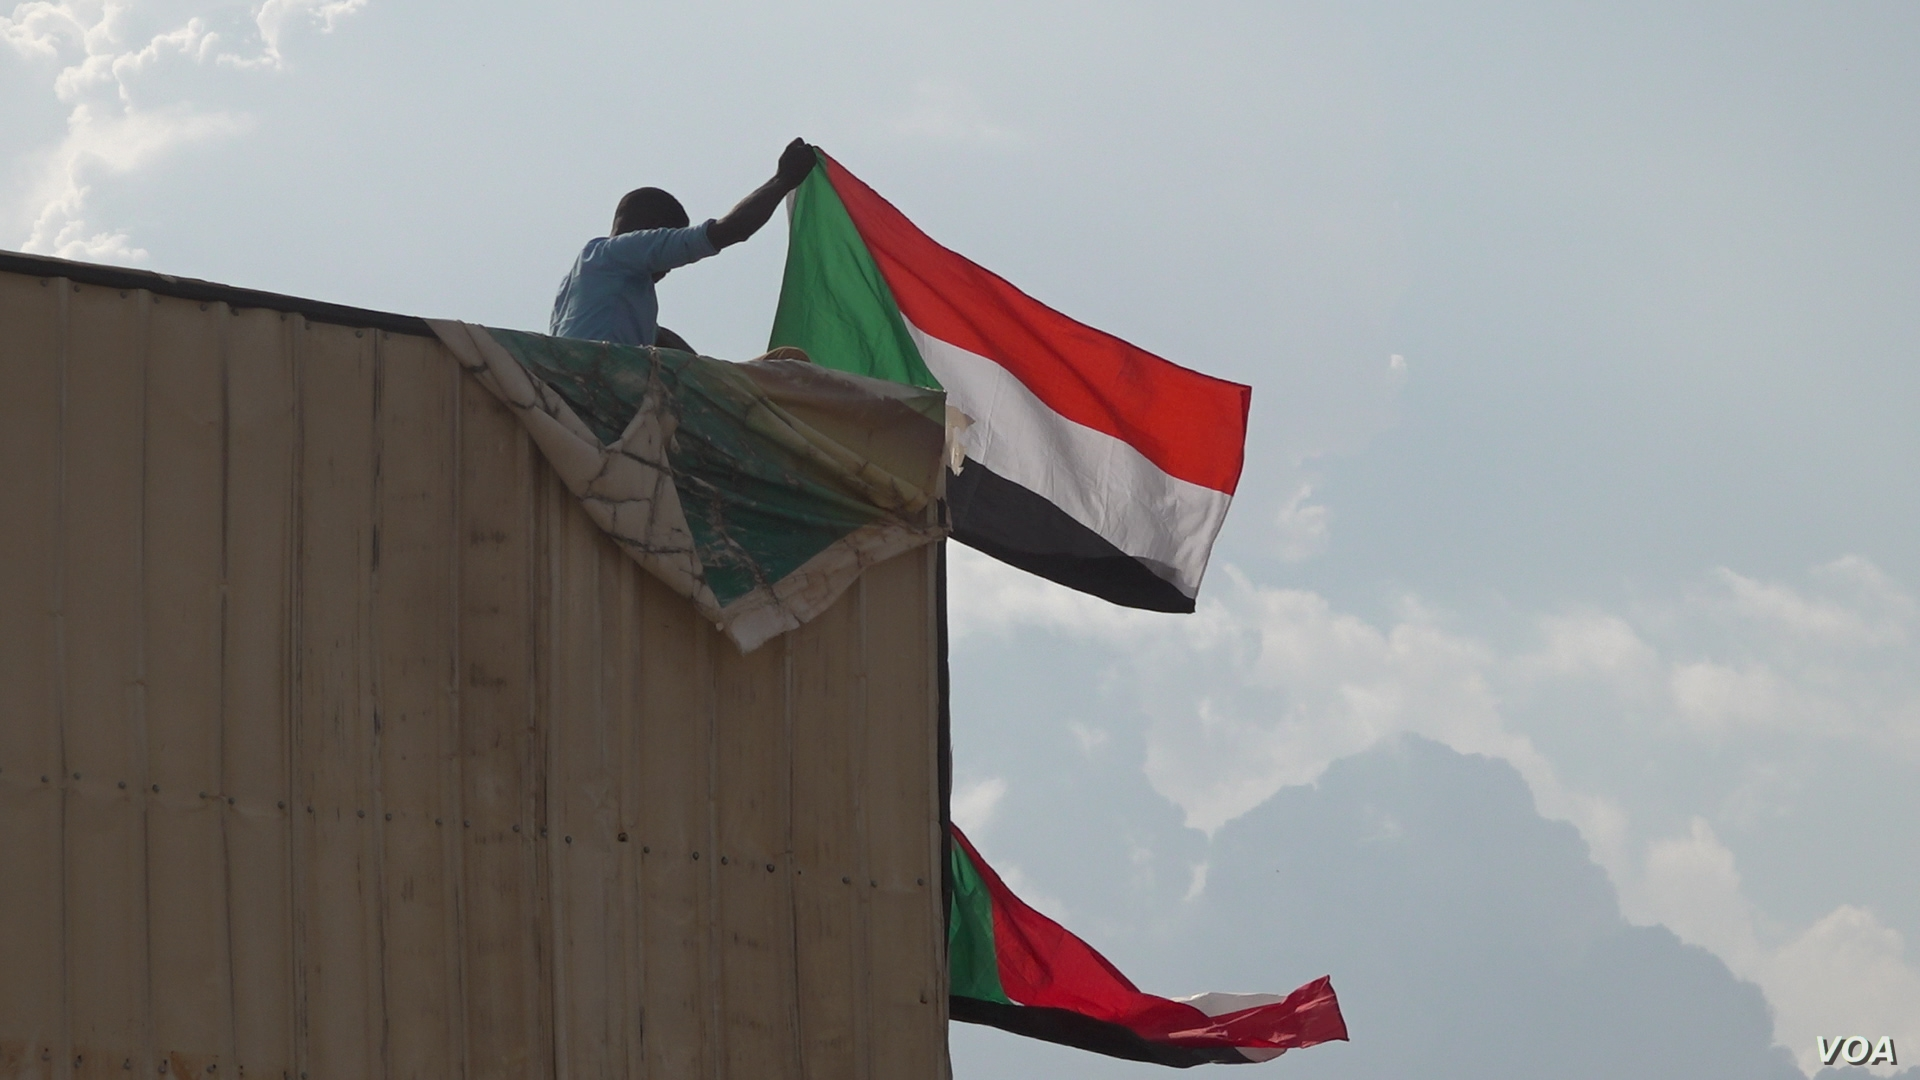 A man climbed a billboard in Khartoum to wave Sudan's flag in honor of the agreement signing (E. Sarai/VOA)